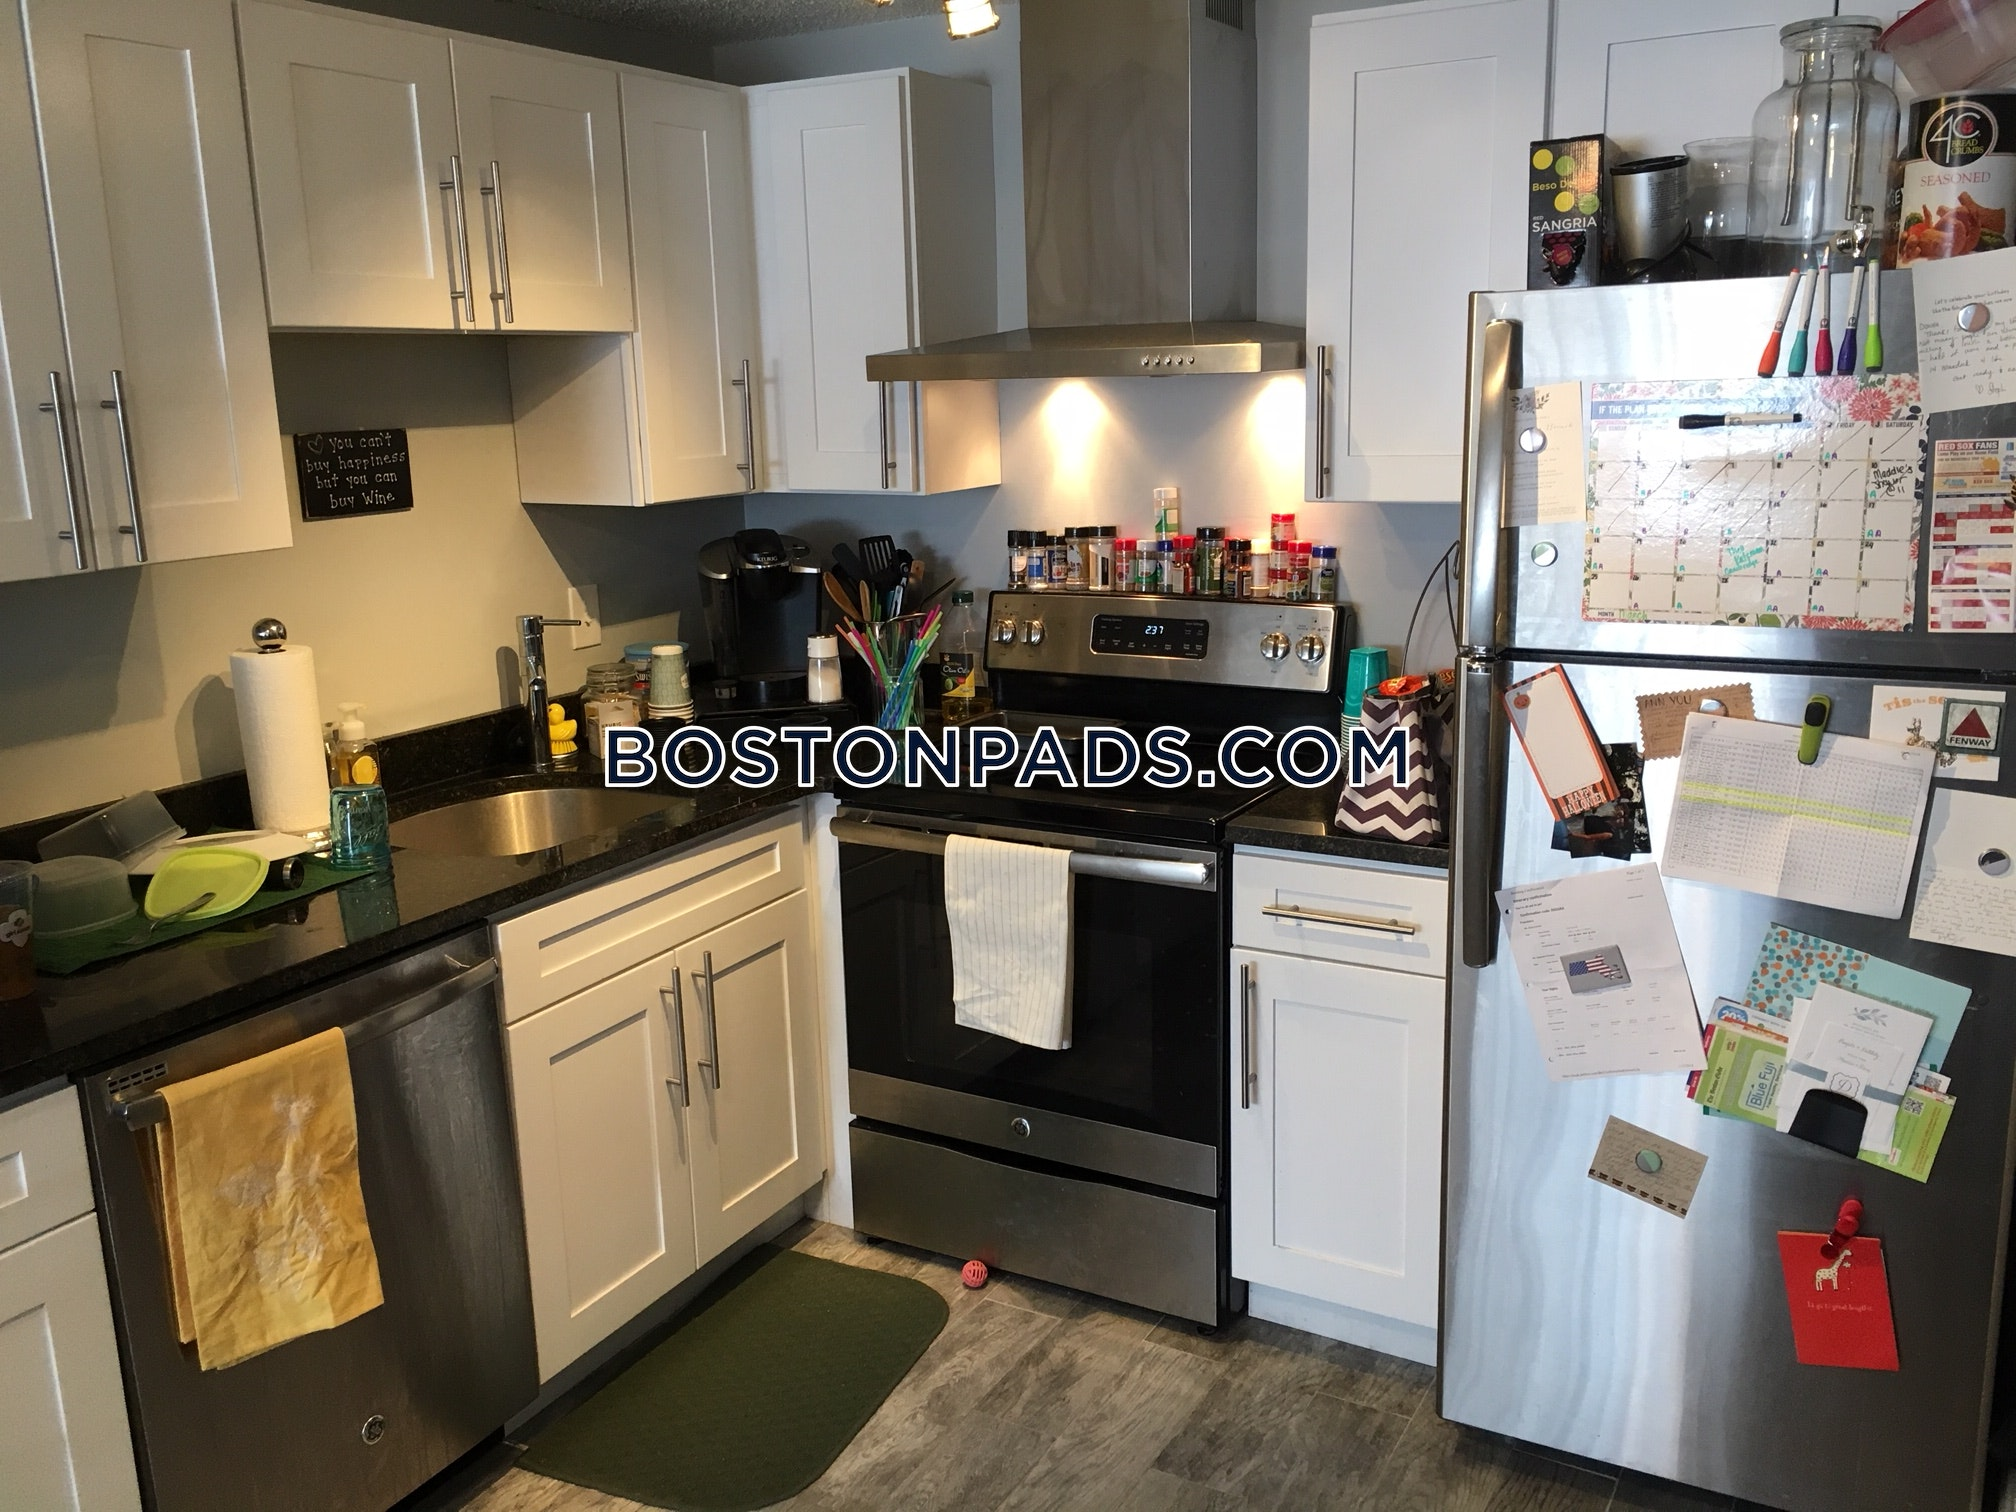 2-beds-1-bath-somerville-magounball-square-2300-86166